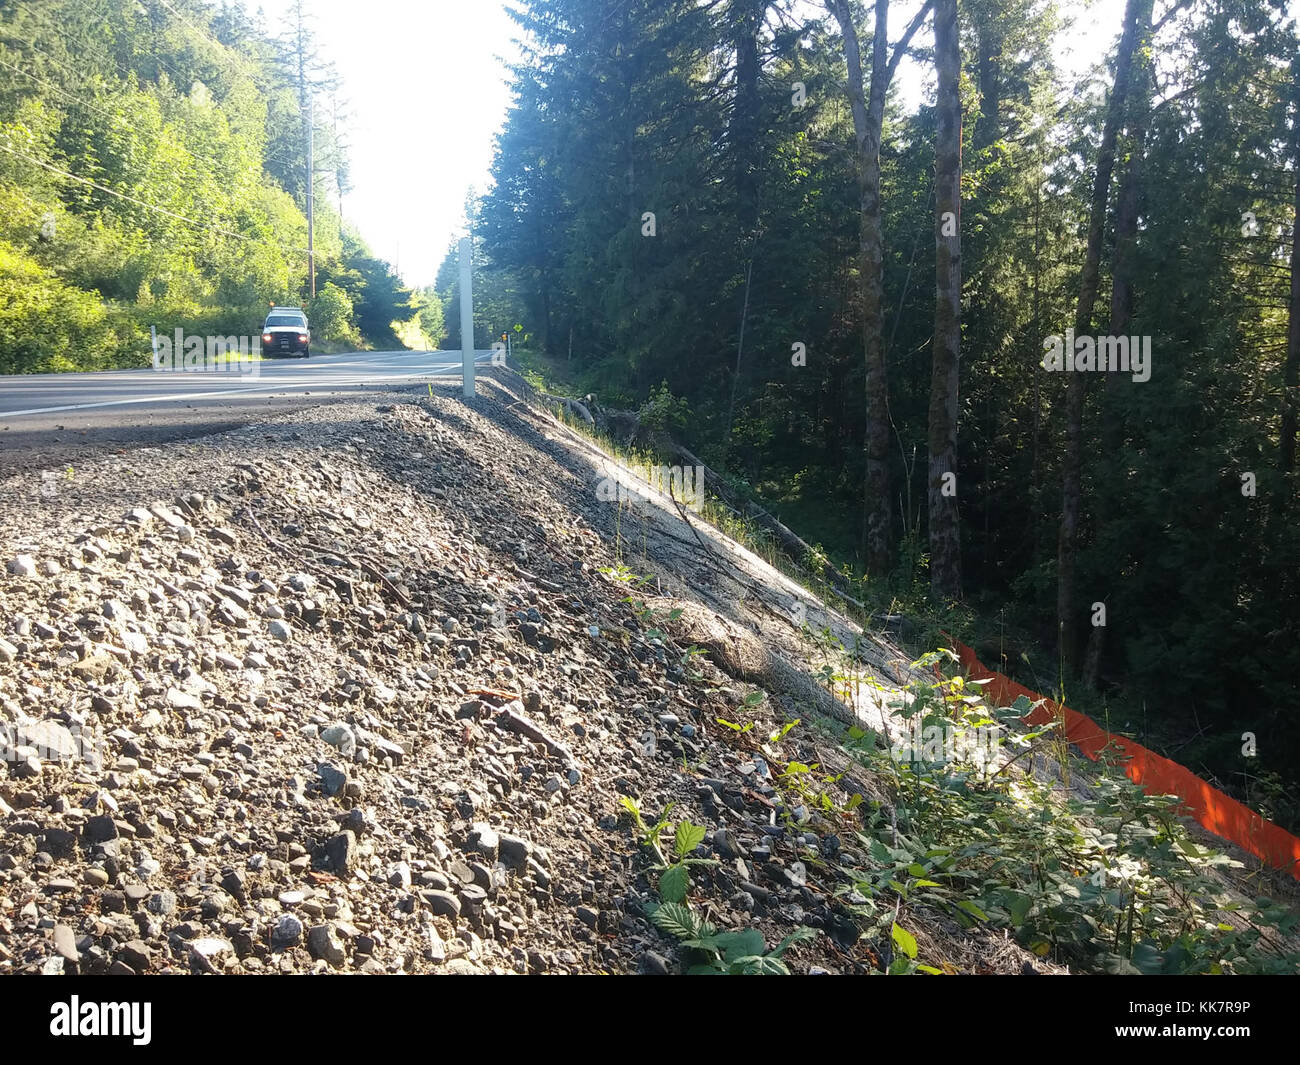 WSDOT received funding to install and replace guardrail along SR